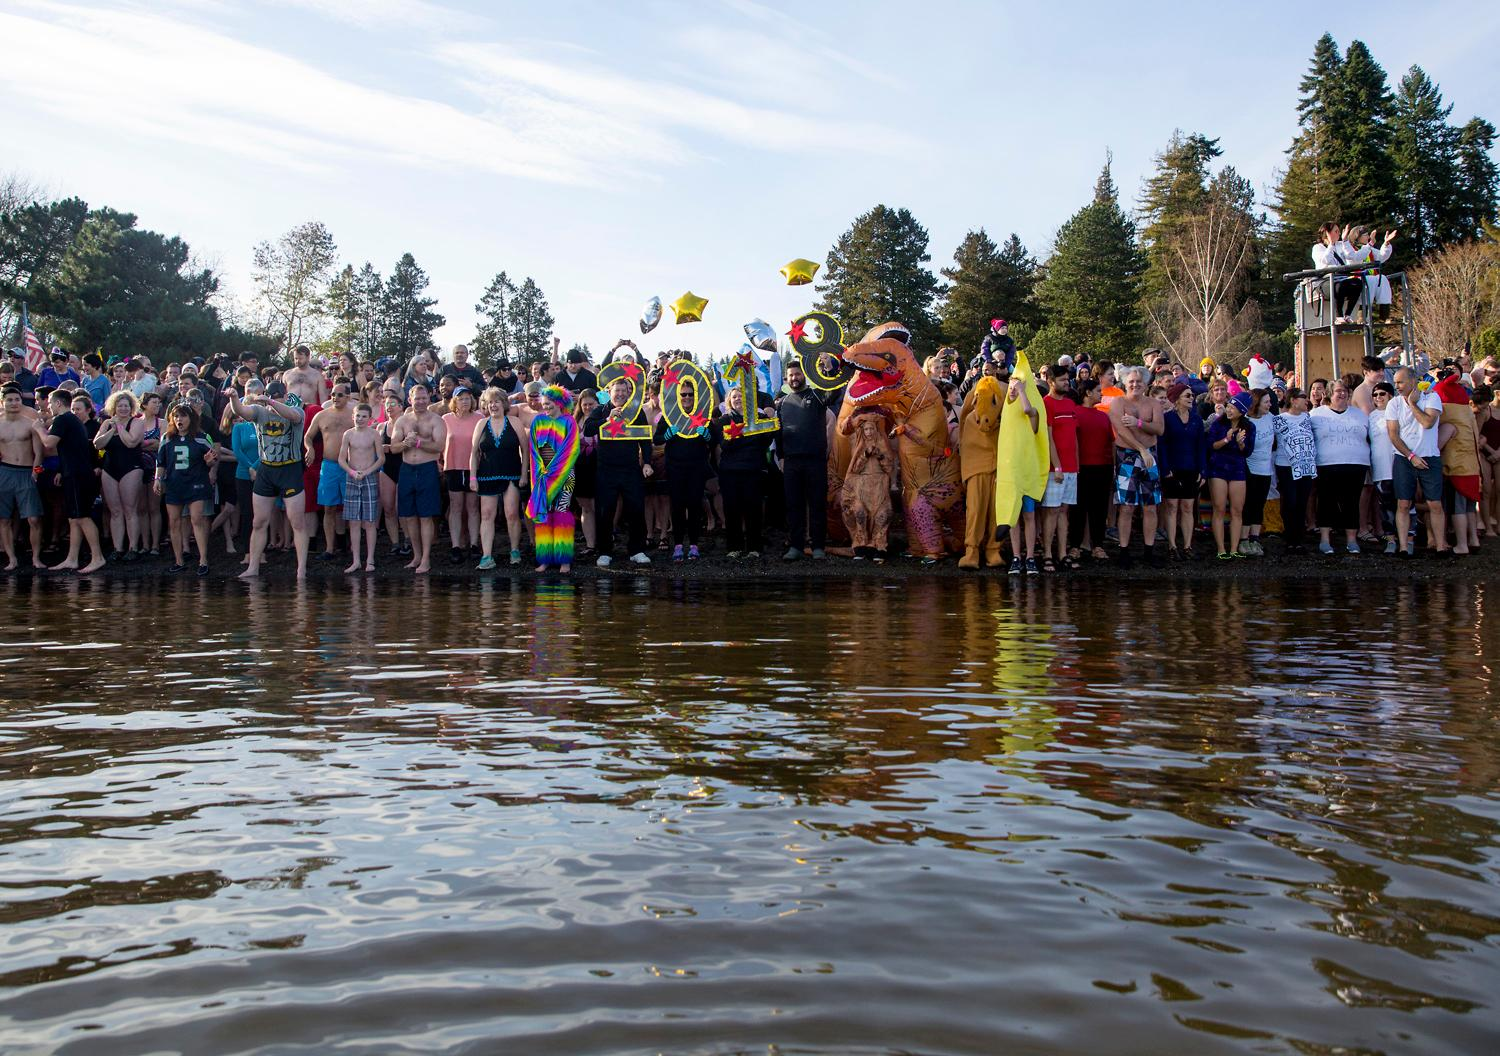 Happy New Year! How are you spending the first day of 2018? Thousands of people spent it in the freezing cold waters of Lake Washington at high noon exactly, as part of the annual Polar Bear Plunge. Costumes were encouraged as participants gathered at Matthews Beach beforehand, and had warm resfreshments waiting for them afterwards! Limited Badges of Courage were awarded to those who darned to fully submerge…..HAPPY 2018! January 1, 2018. (Image: Sy Bean / Seattle Refined)